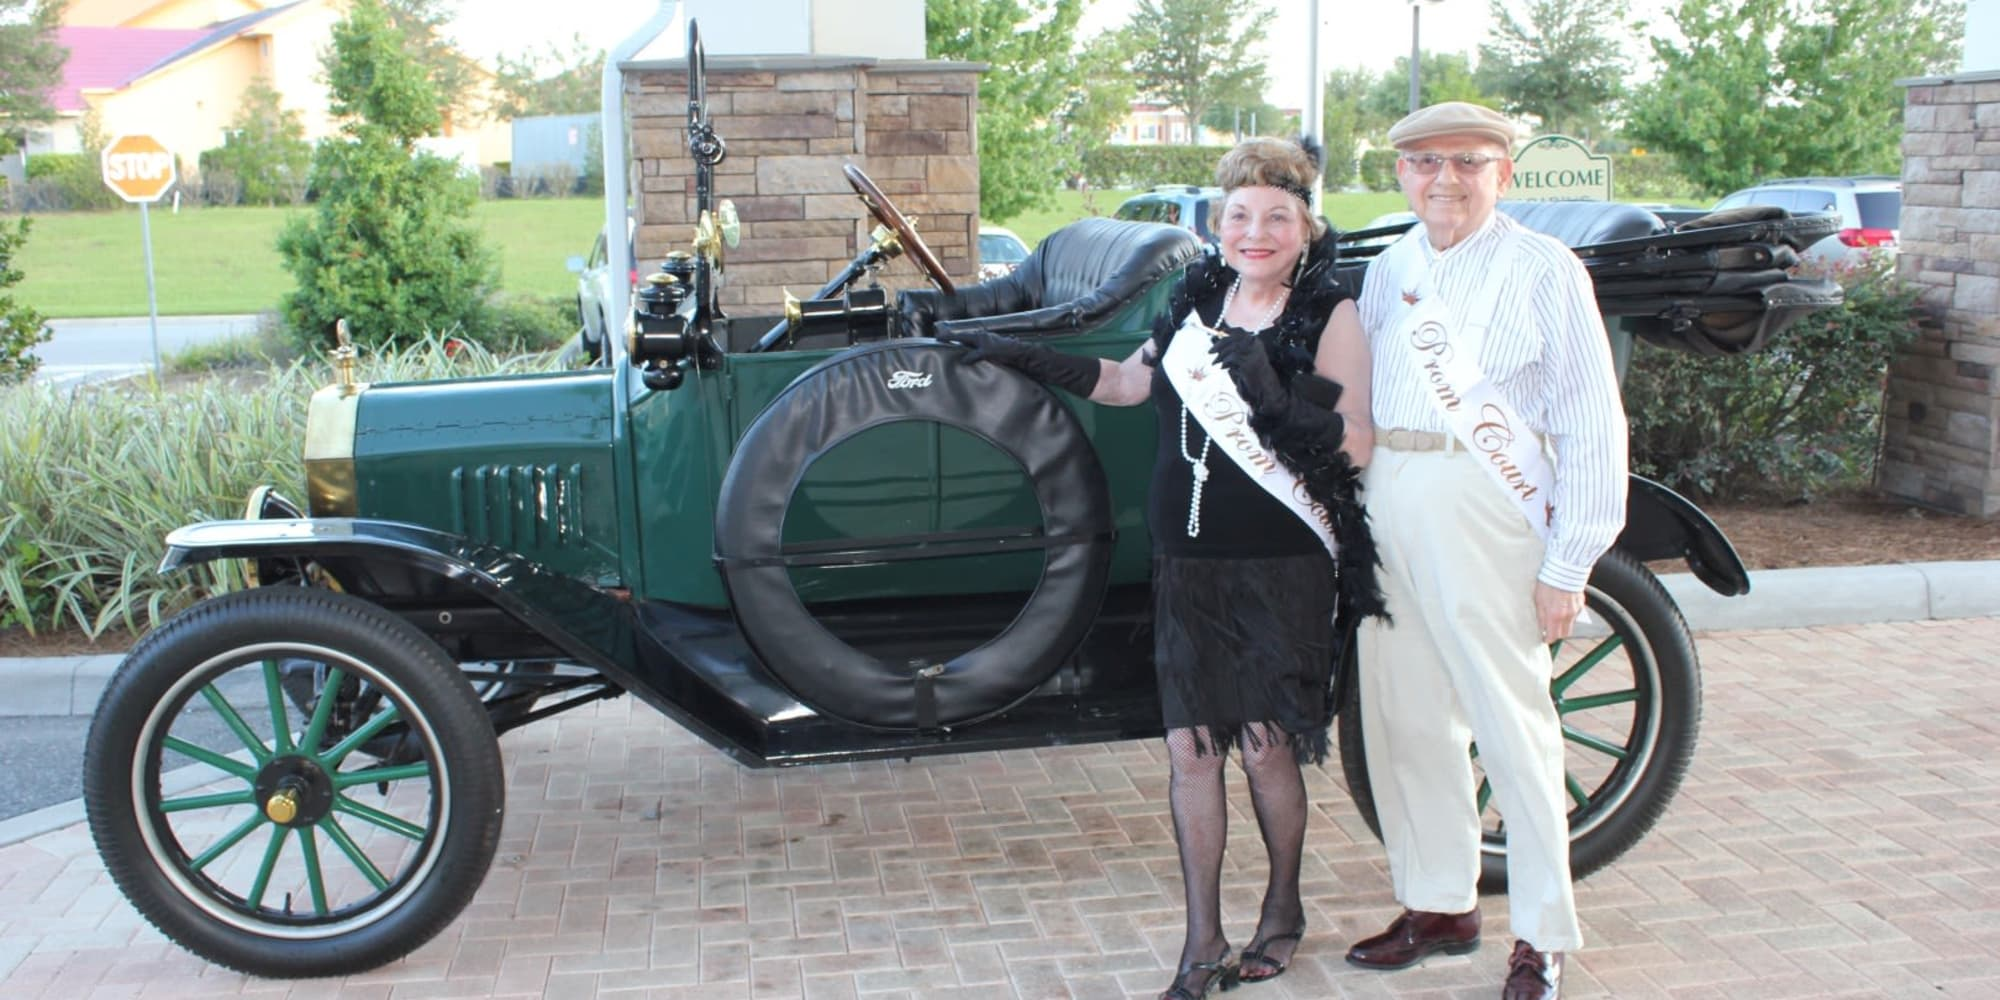 Two residents from Springwood Landing Gracious Retirement Living in Vancouver, Washington dressed for prom and posing in front of a car